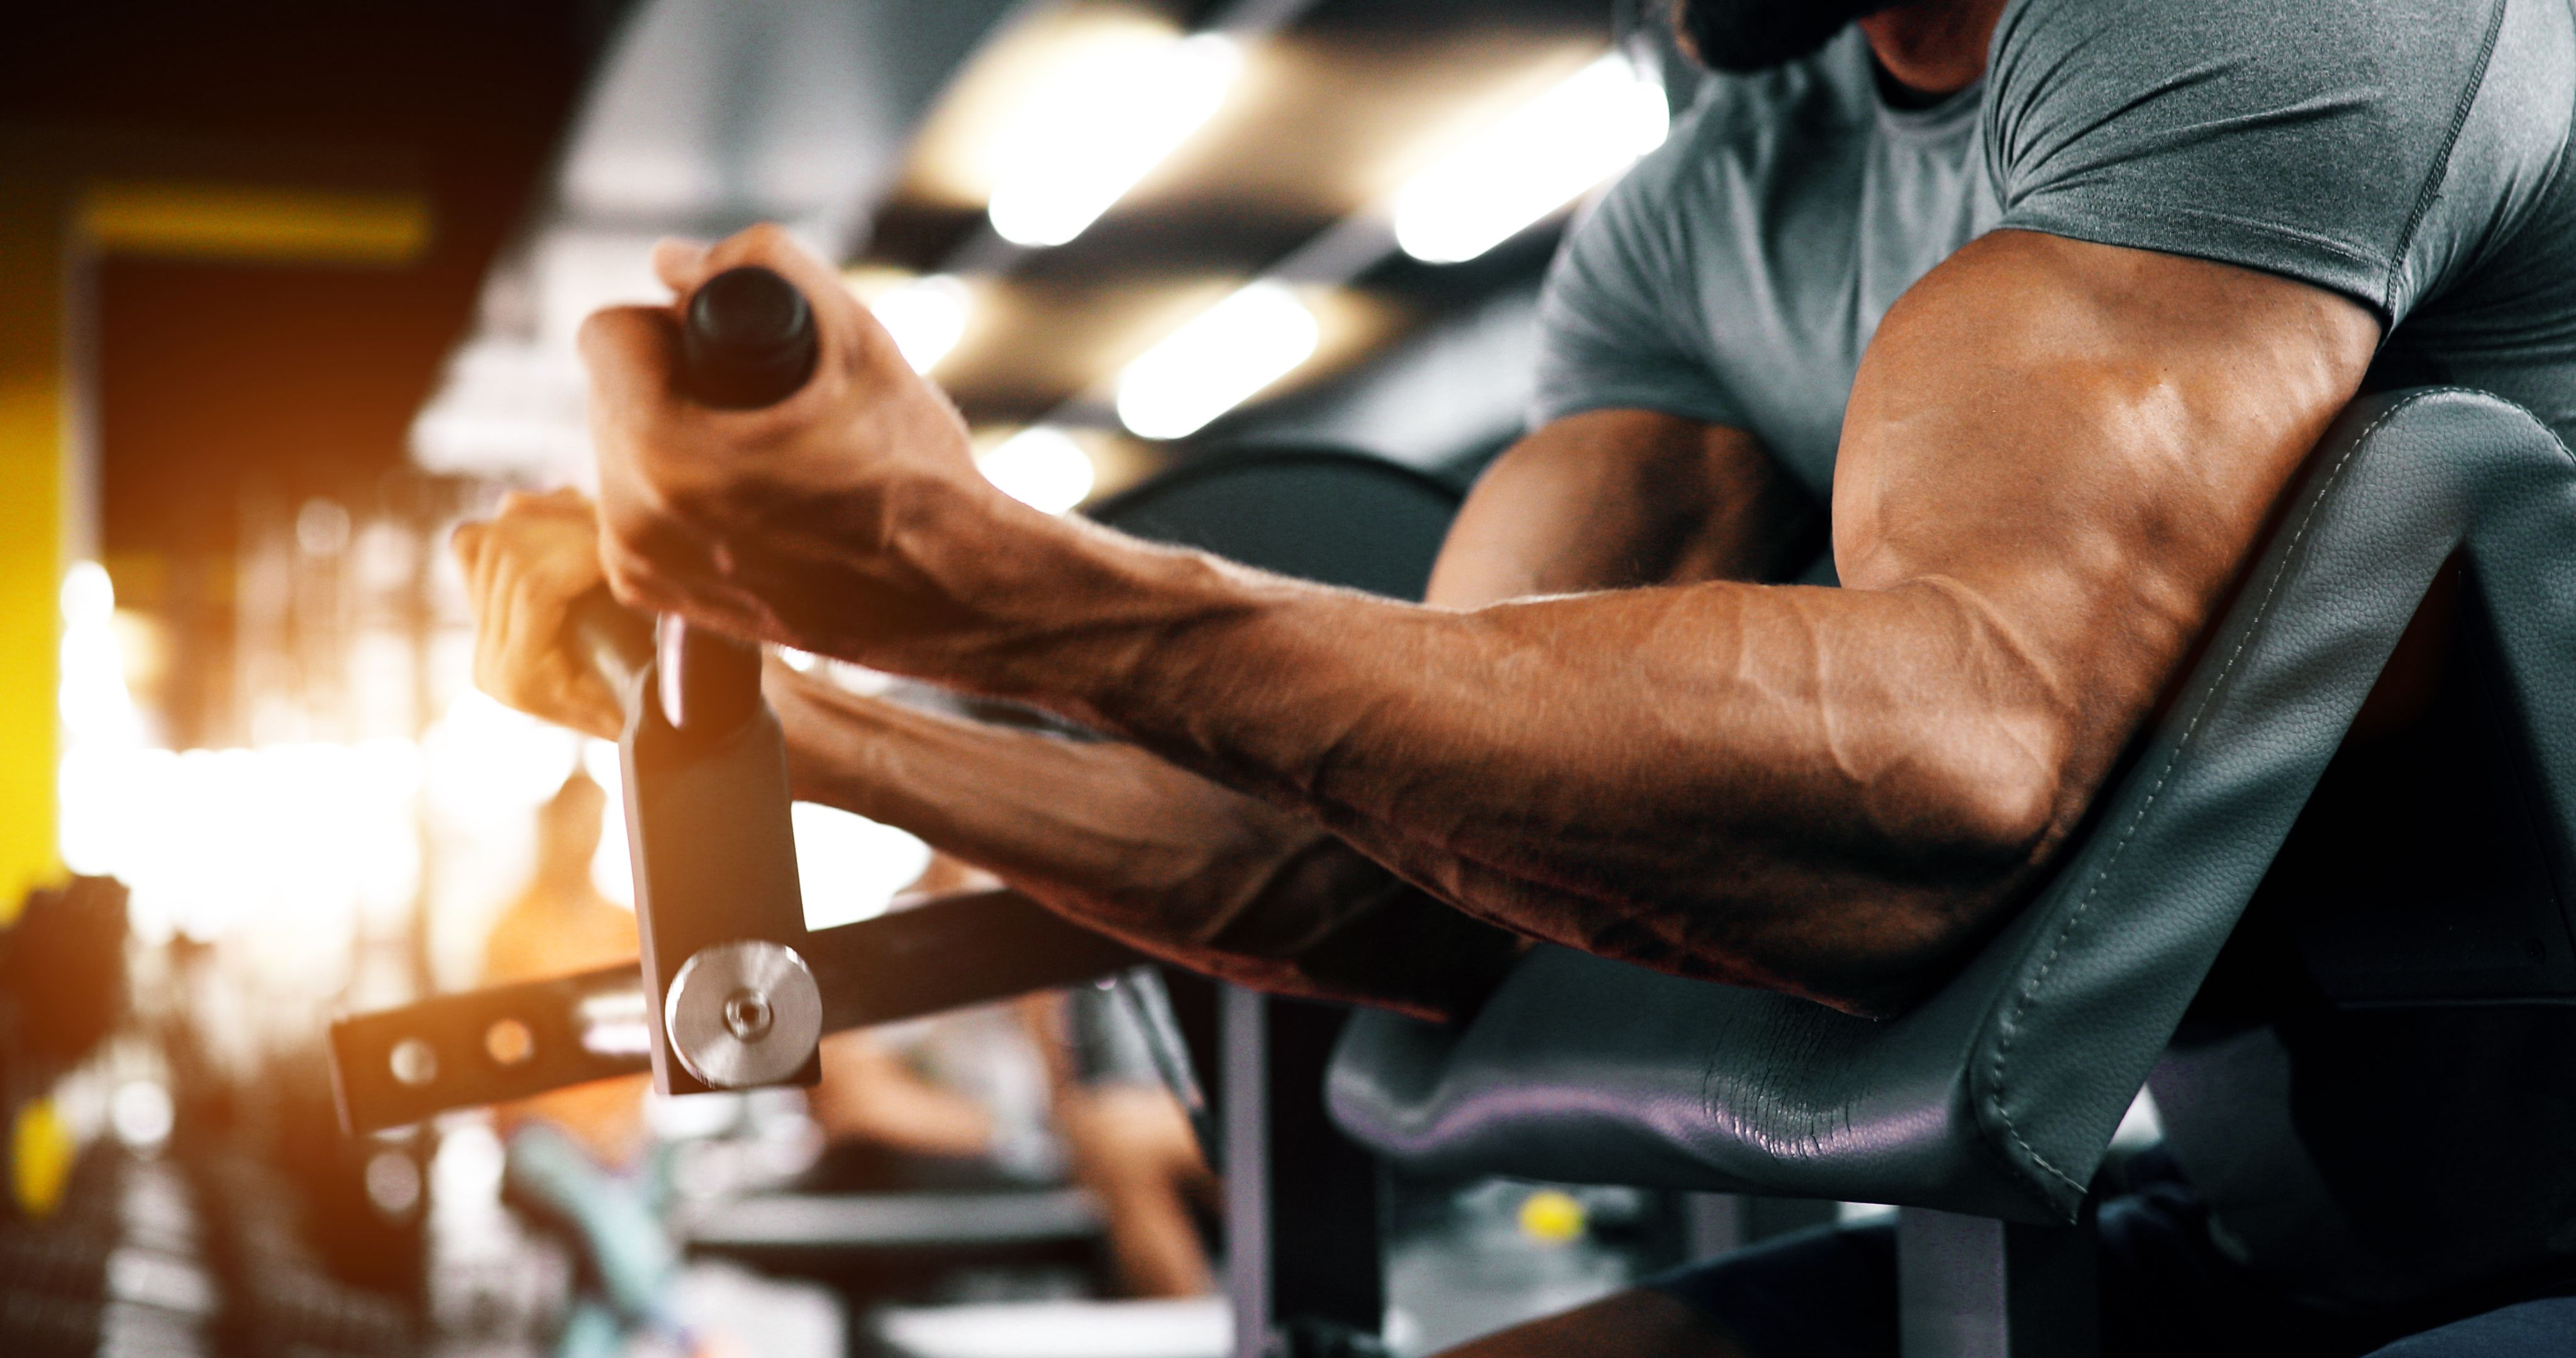 Bicep Exercises | The 10 Best for Building Muscle